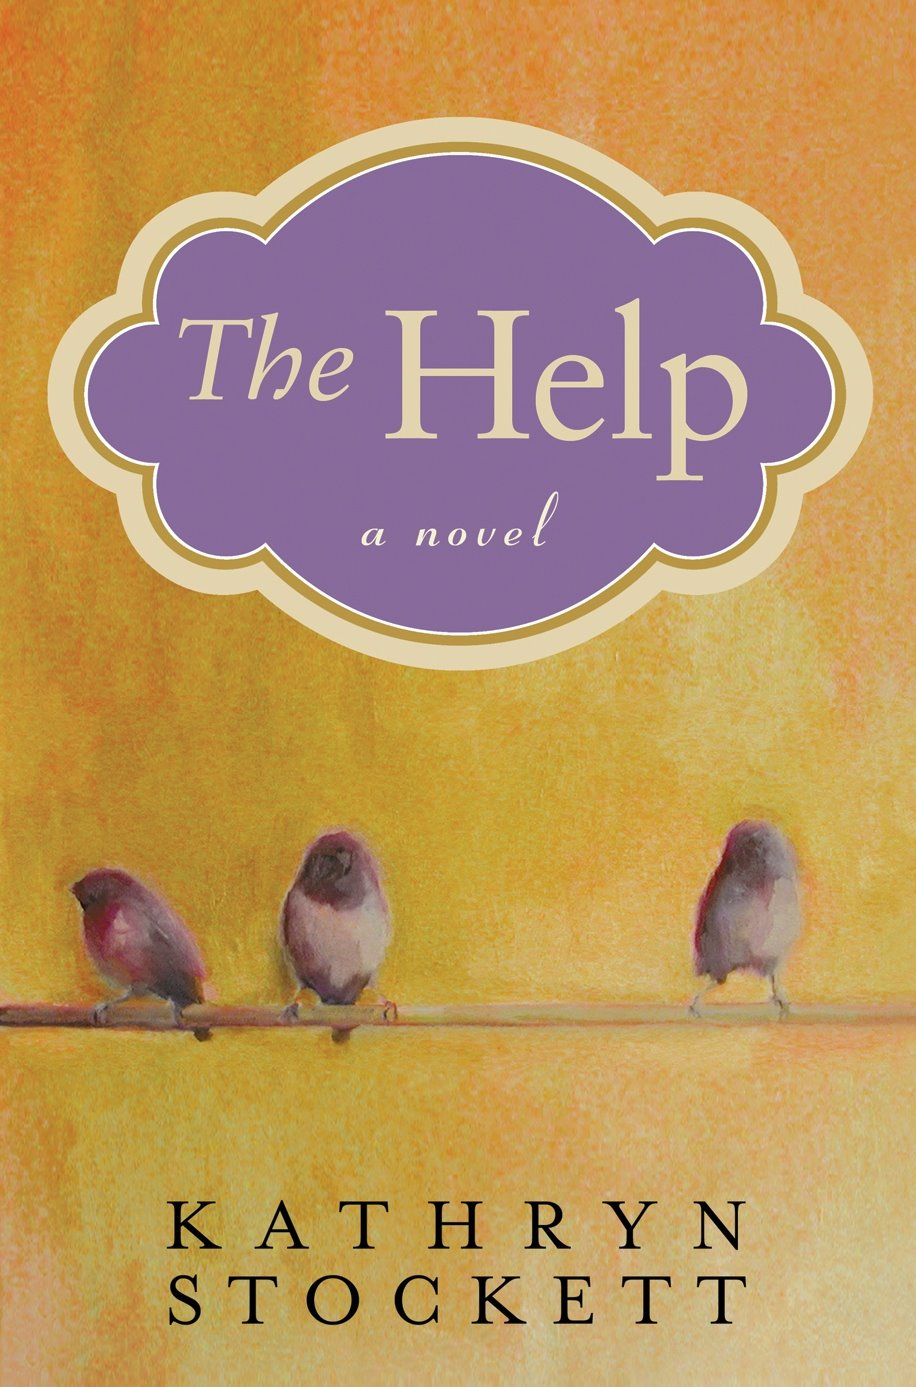 book review of the help